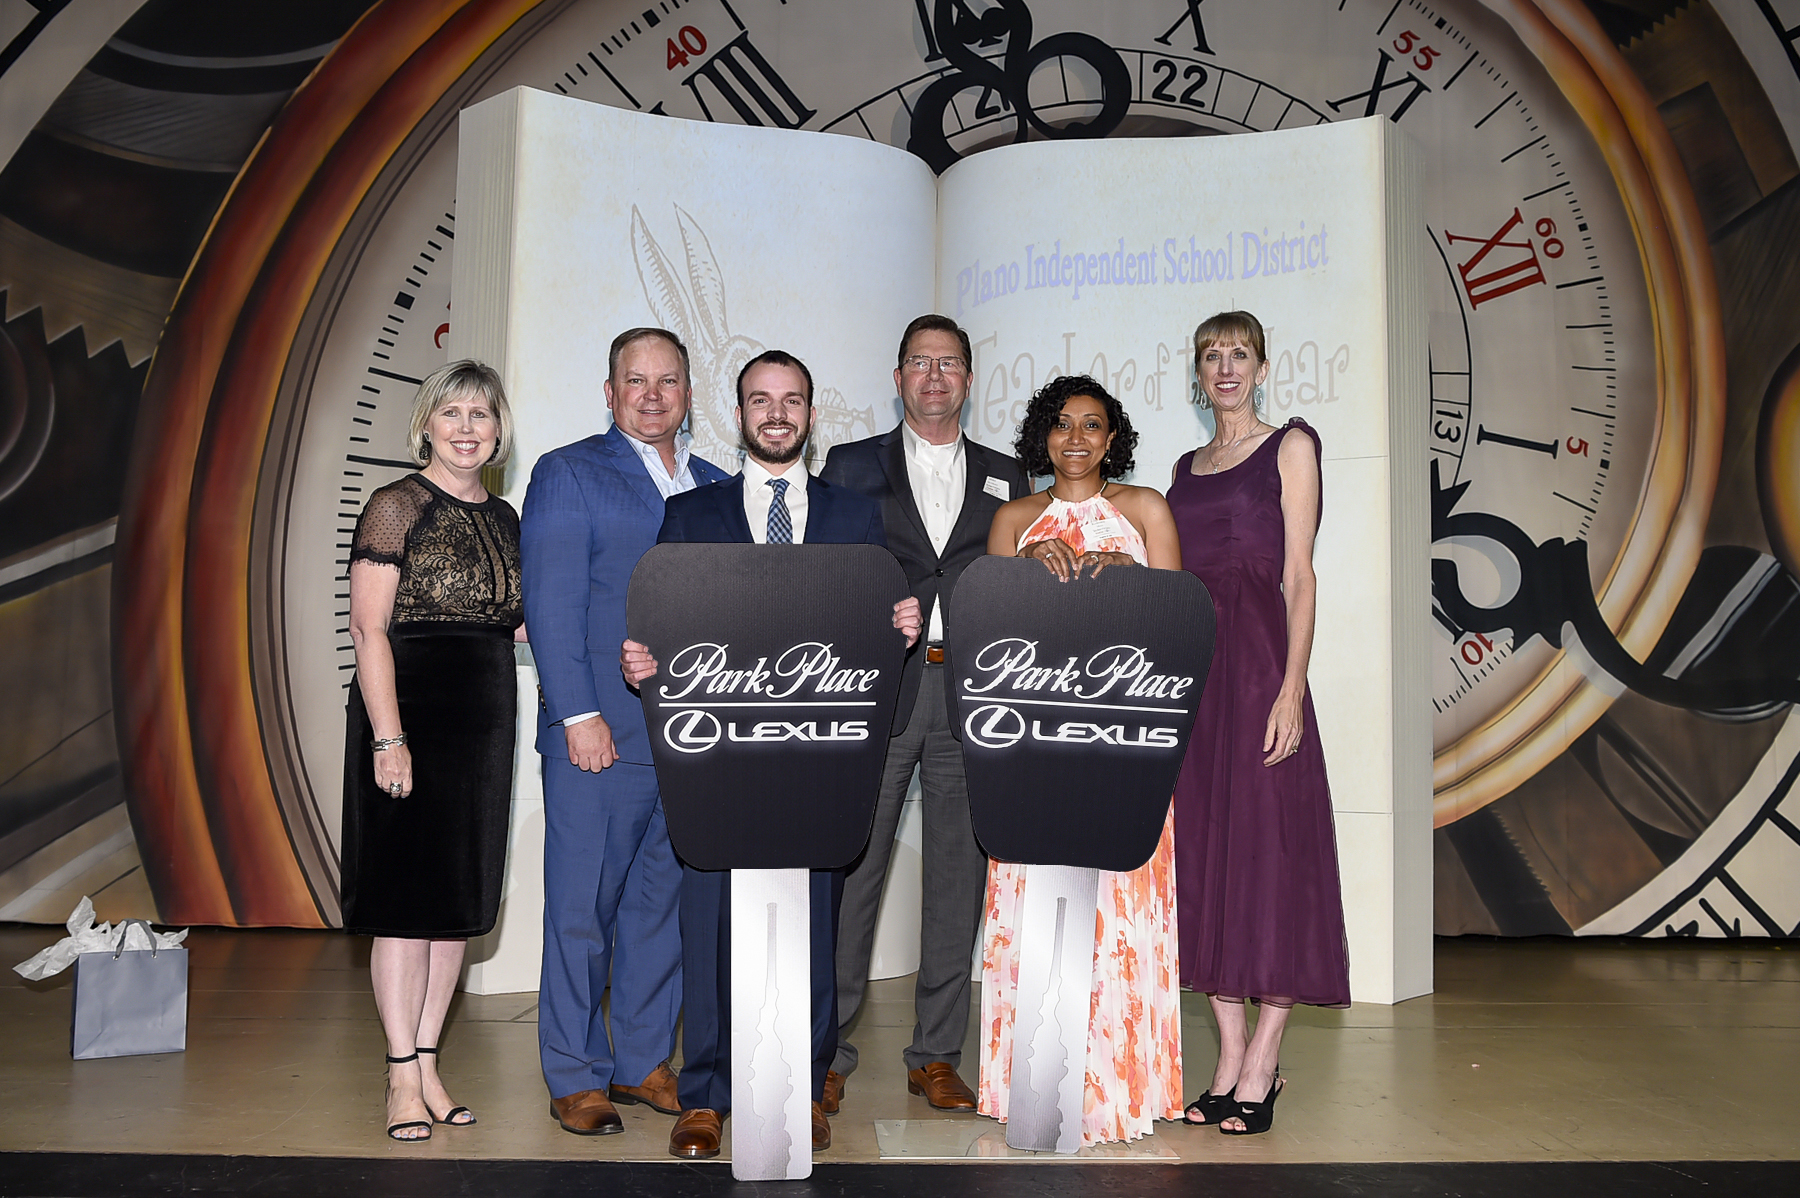 Winners with Board President and Superintendent and Lexus sponsors